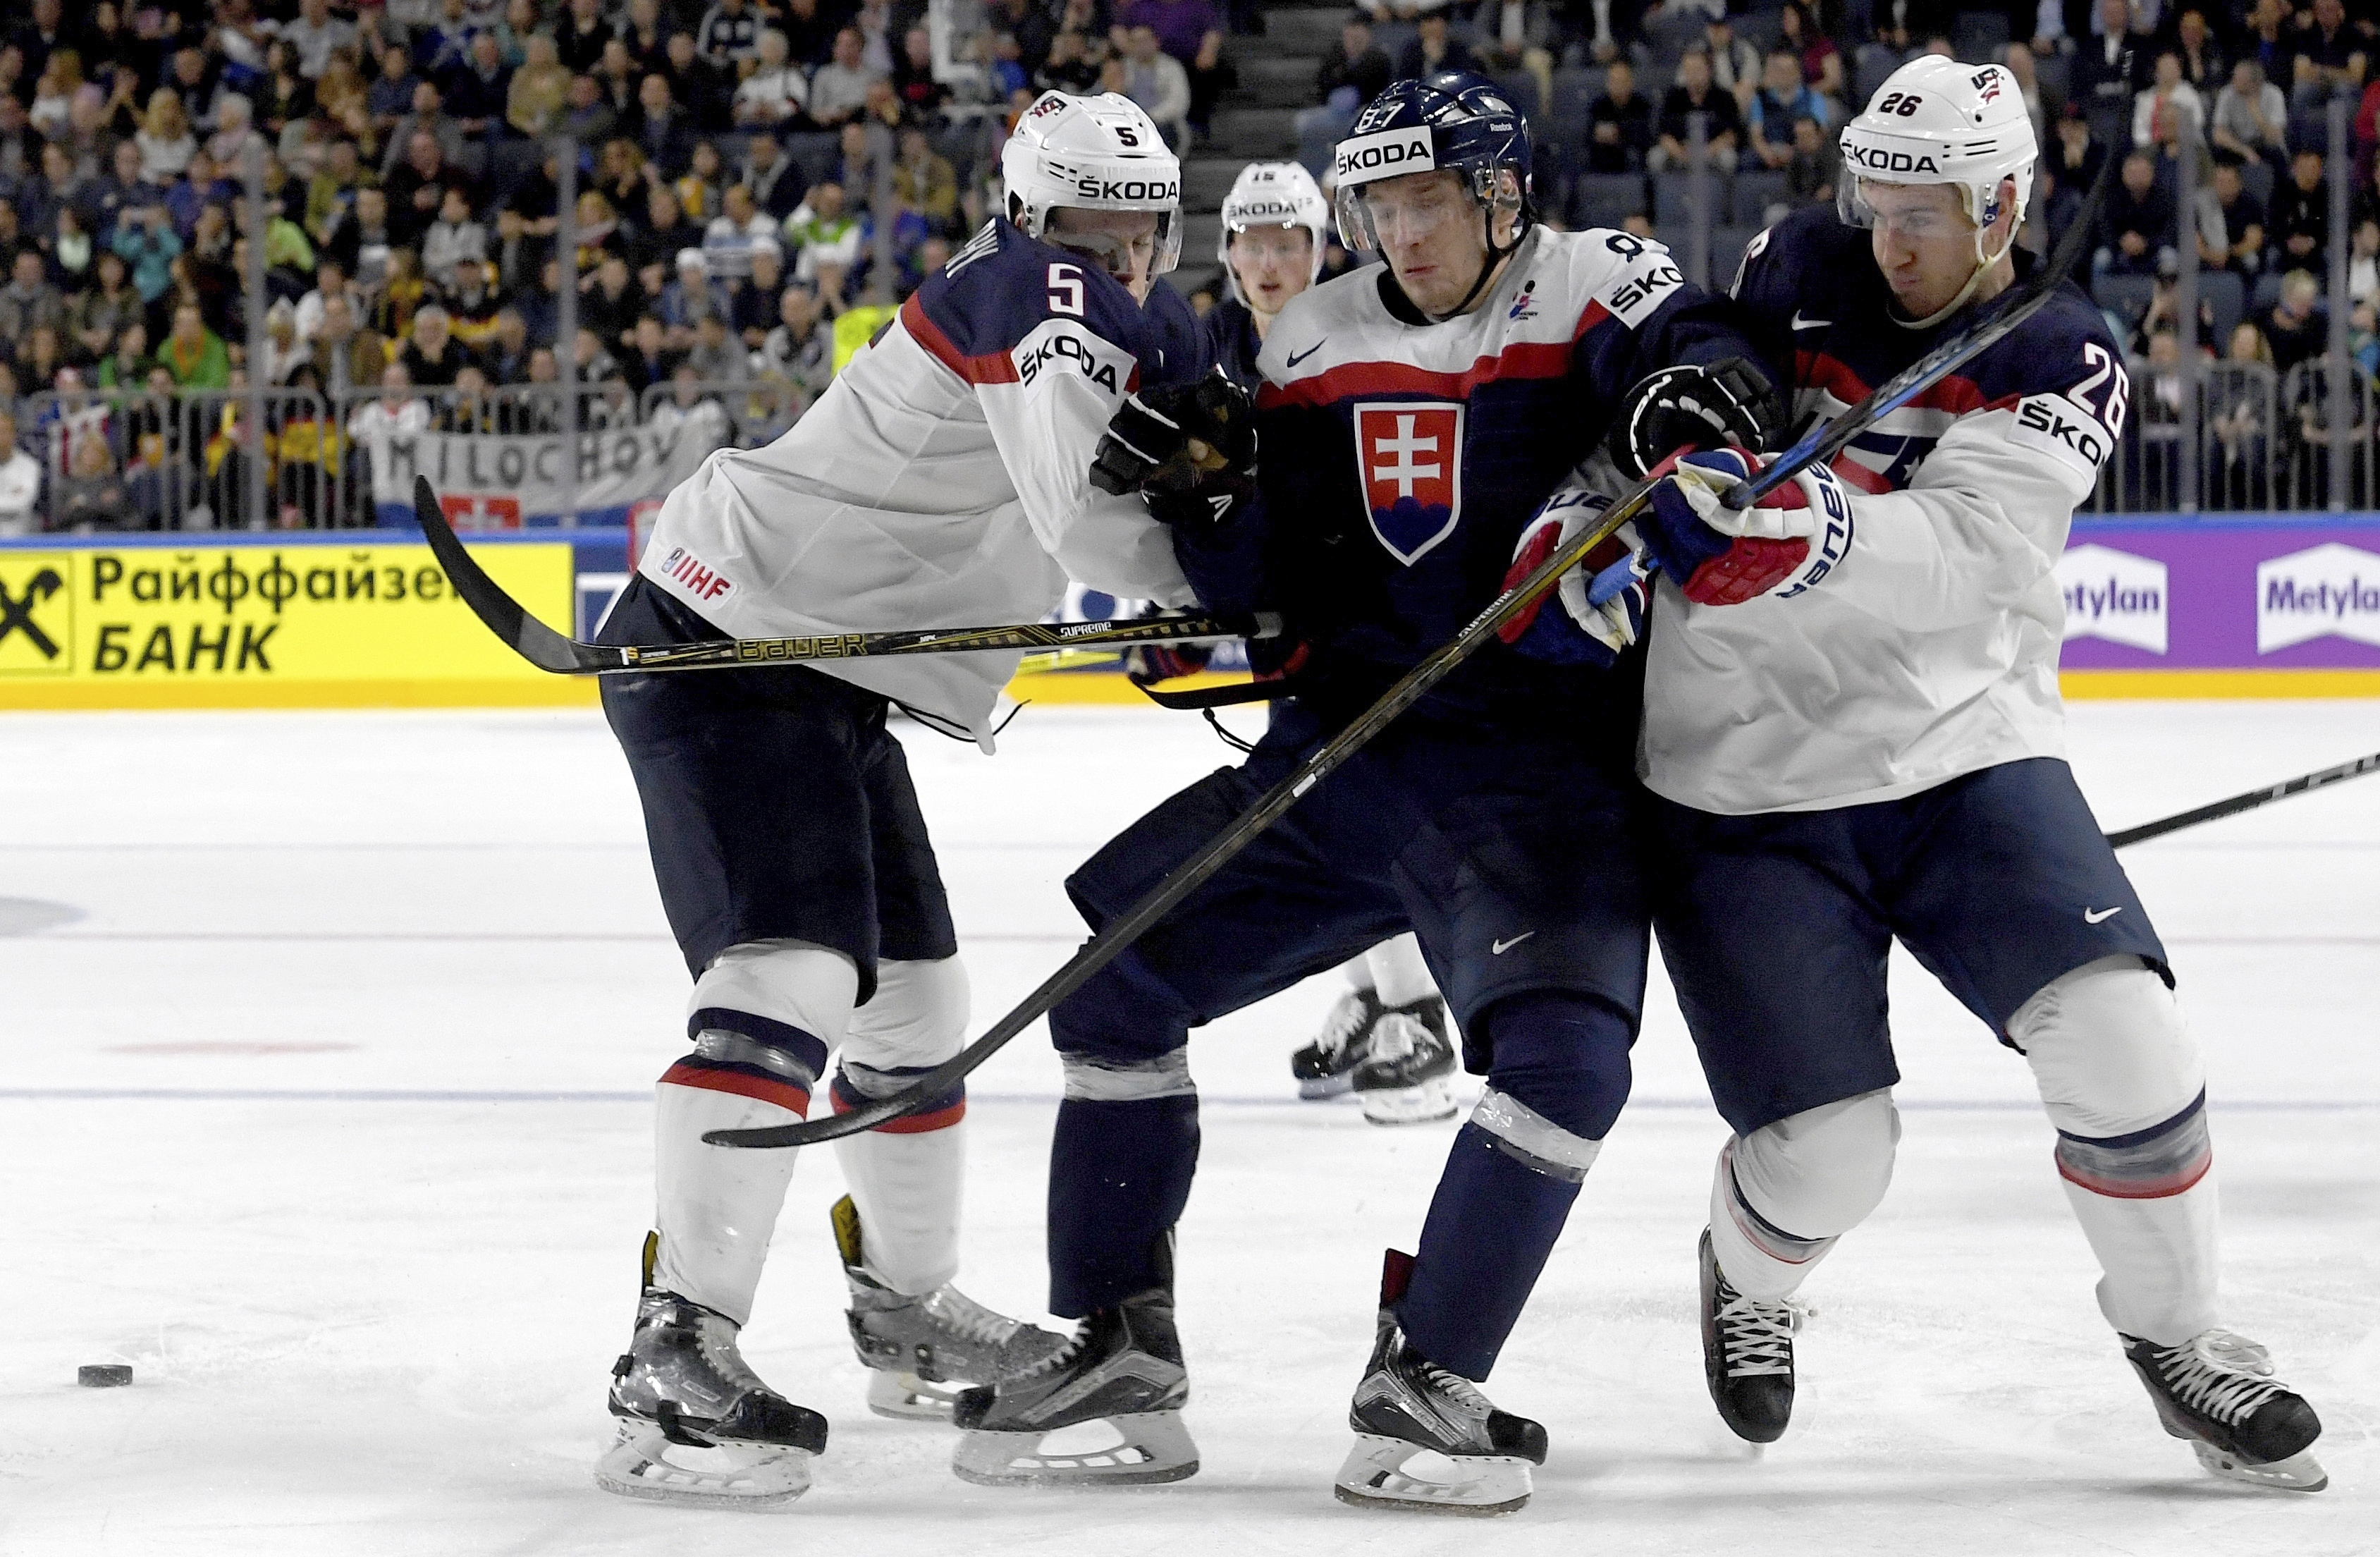 Slovakia's  Marcel Hascak , center, and US players  Connor Murphy, left, and Kevin Hayes challenge during a group A match between Slovakia and USA at the 2017 Hockey World Championships in the Lanxess Arena in  Cologne, Germany, Sunday, May 14, 2017.  (Monika Skolimowska/dpa via AP)